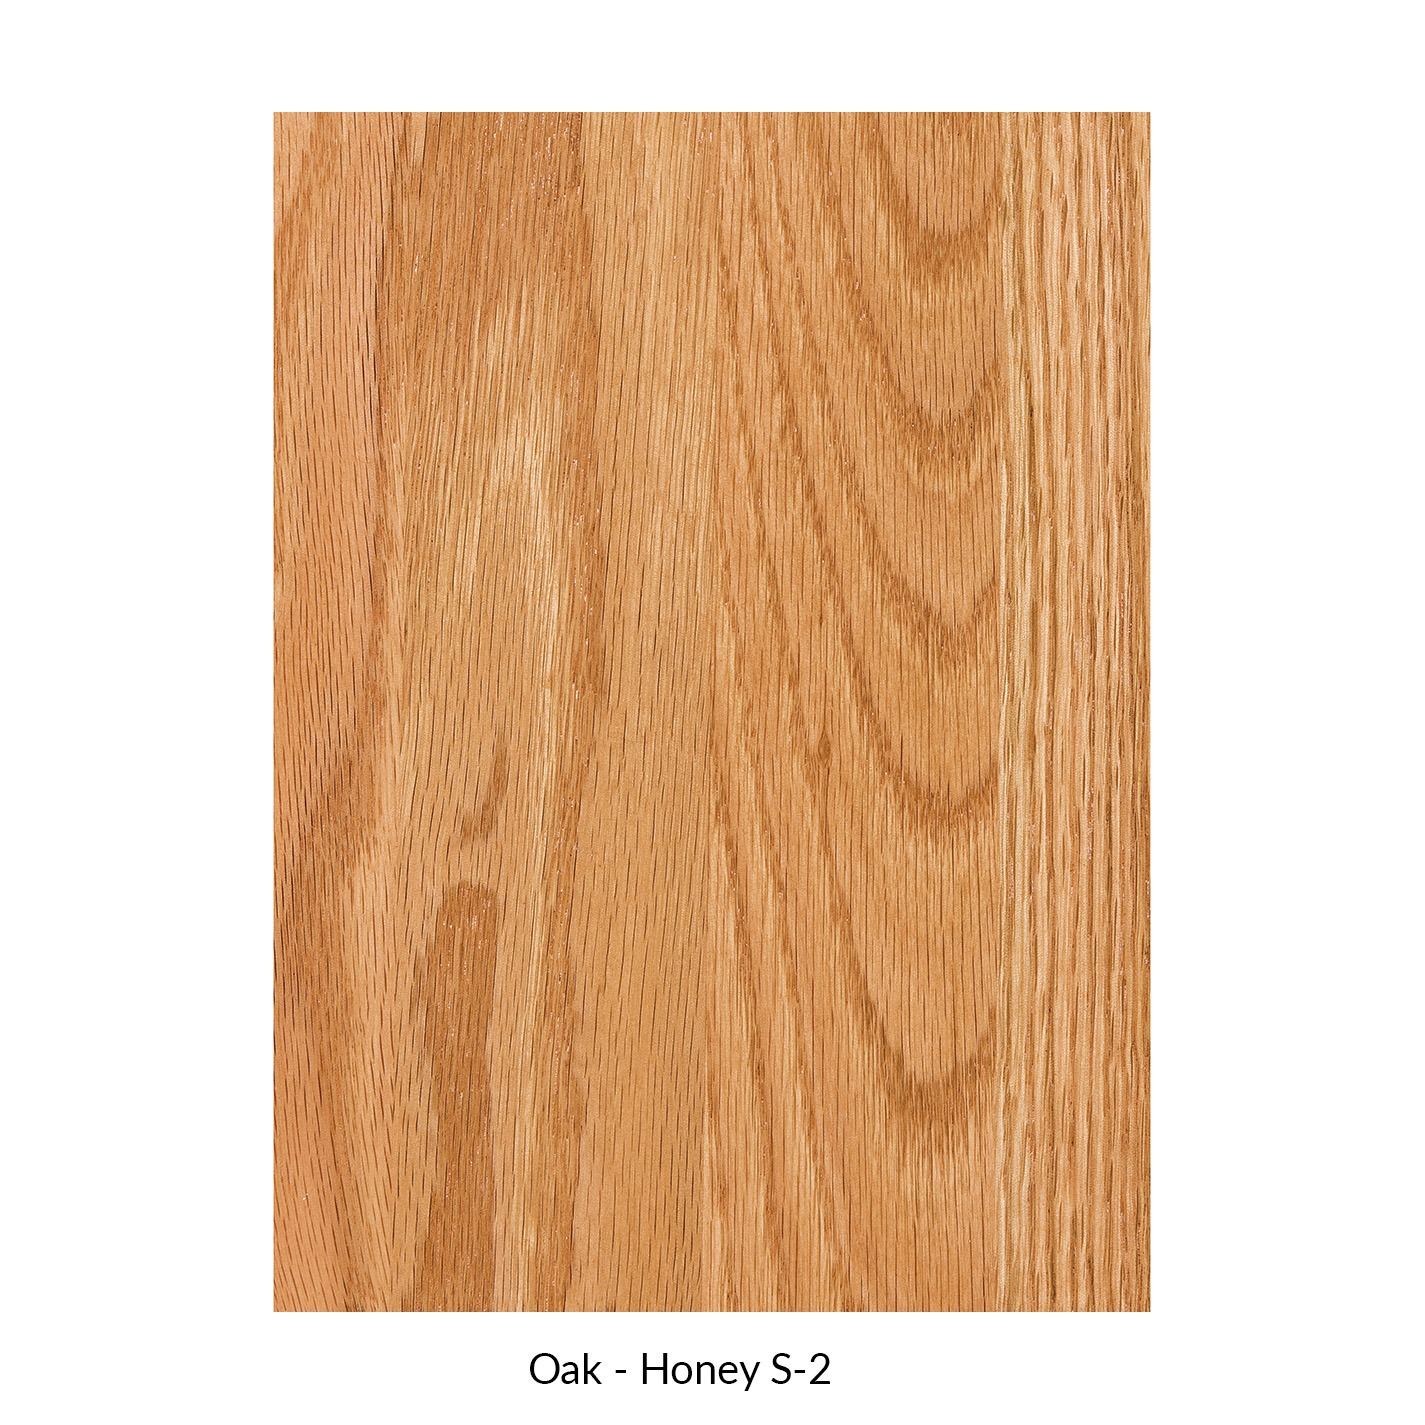 spectrum-oak-honey-s-2.jpg